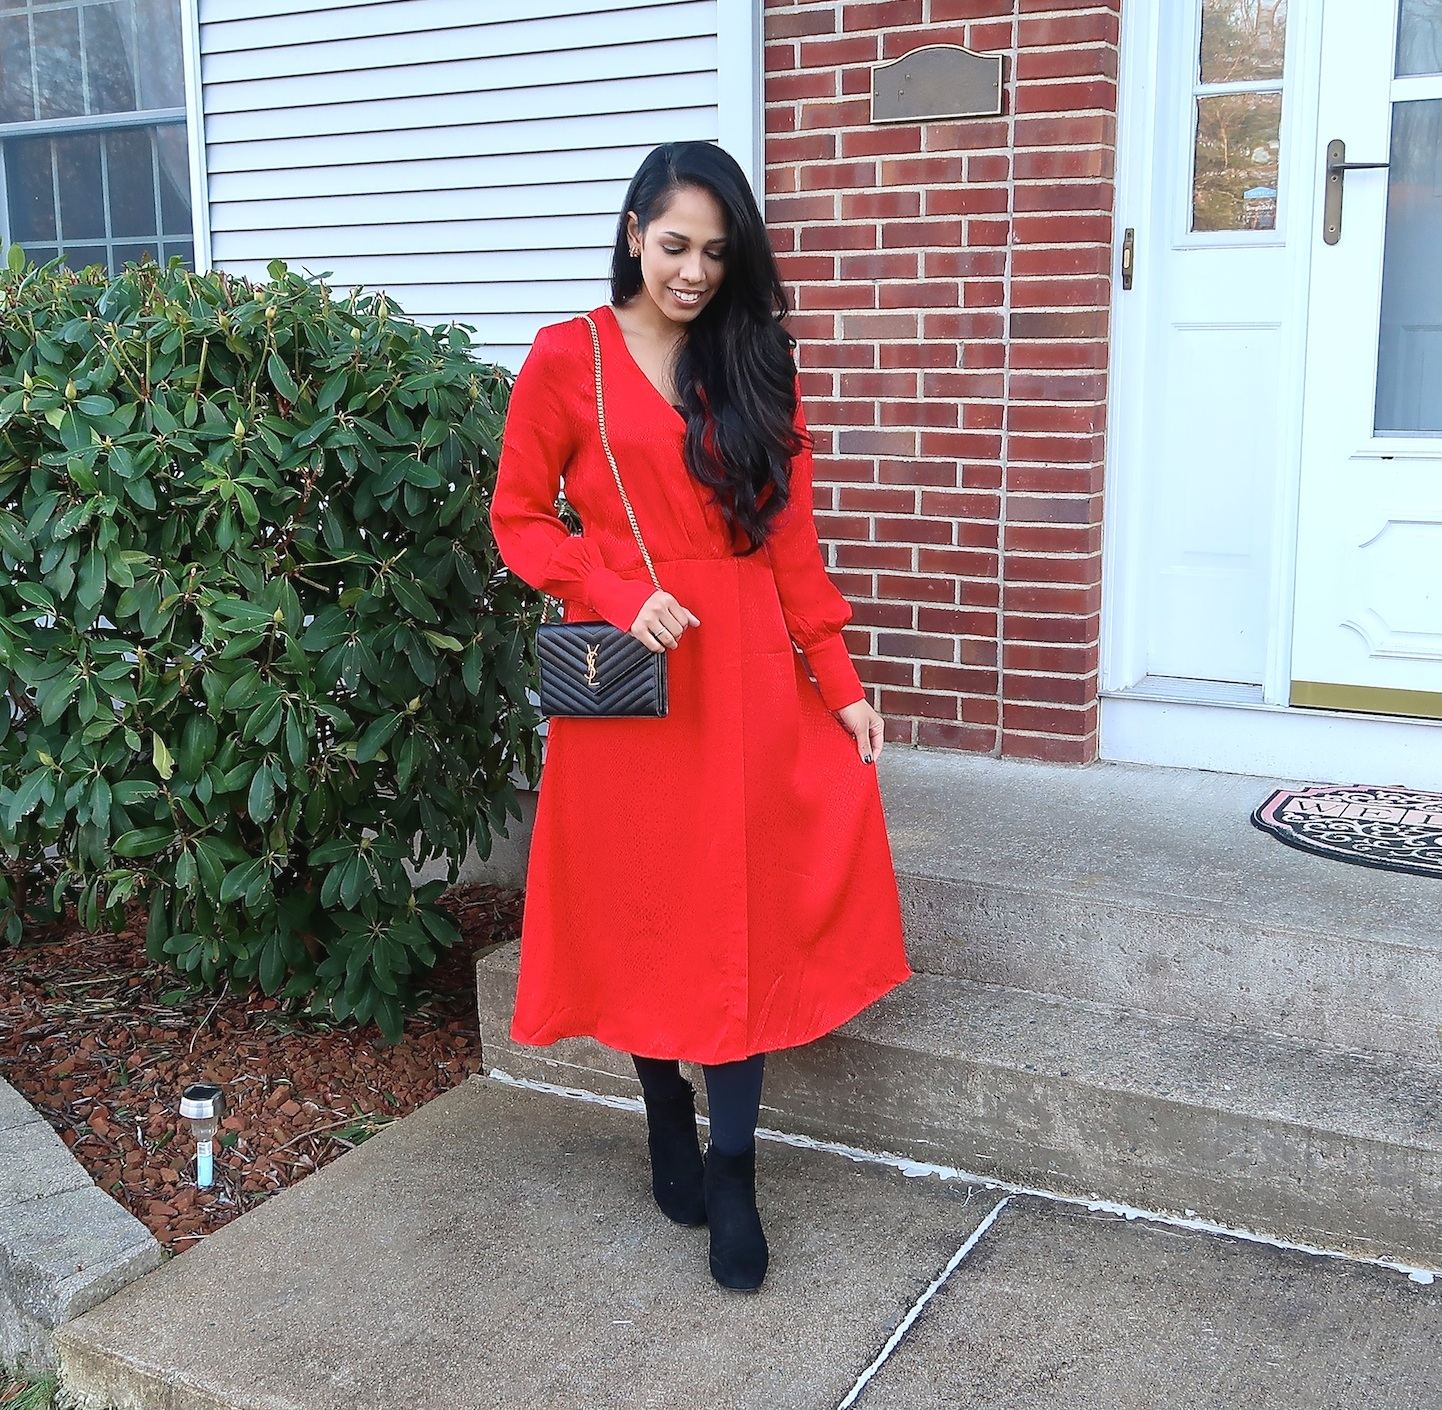 affordable-red-dress-holidays-christmas-new-years.JPG